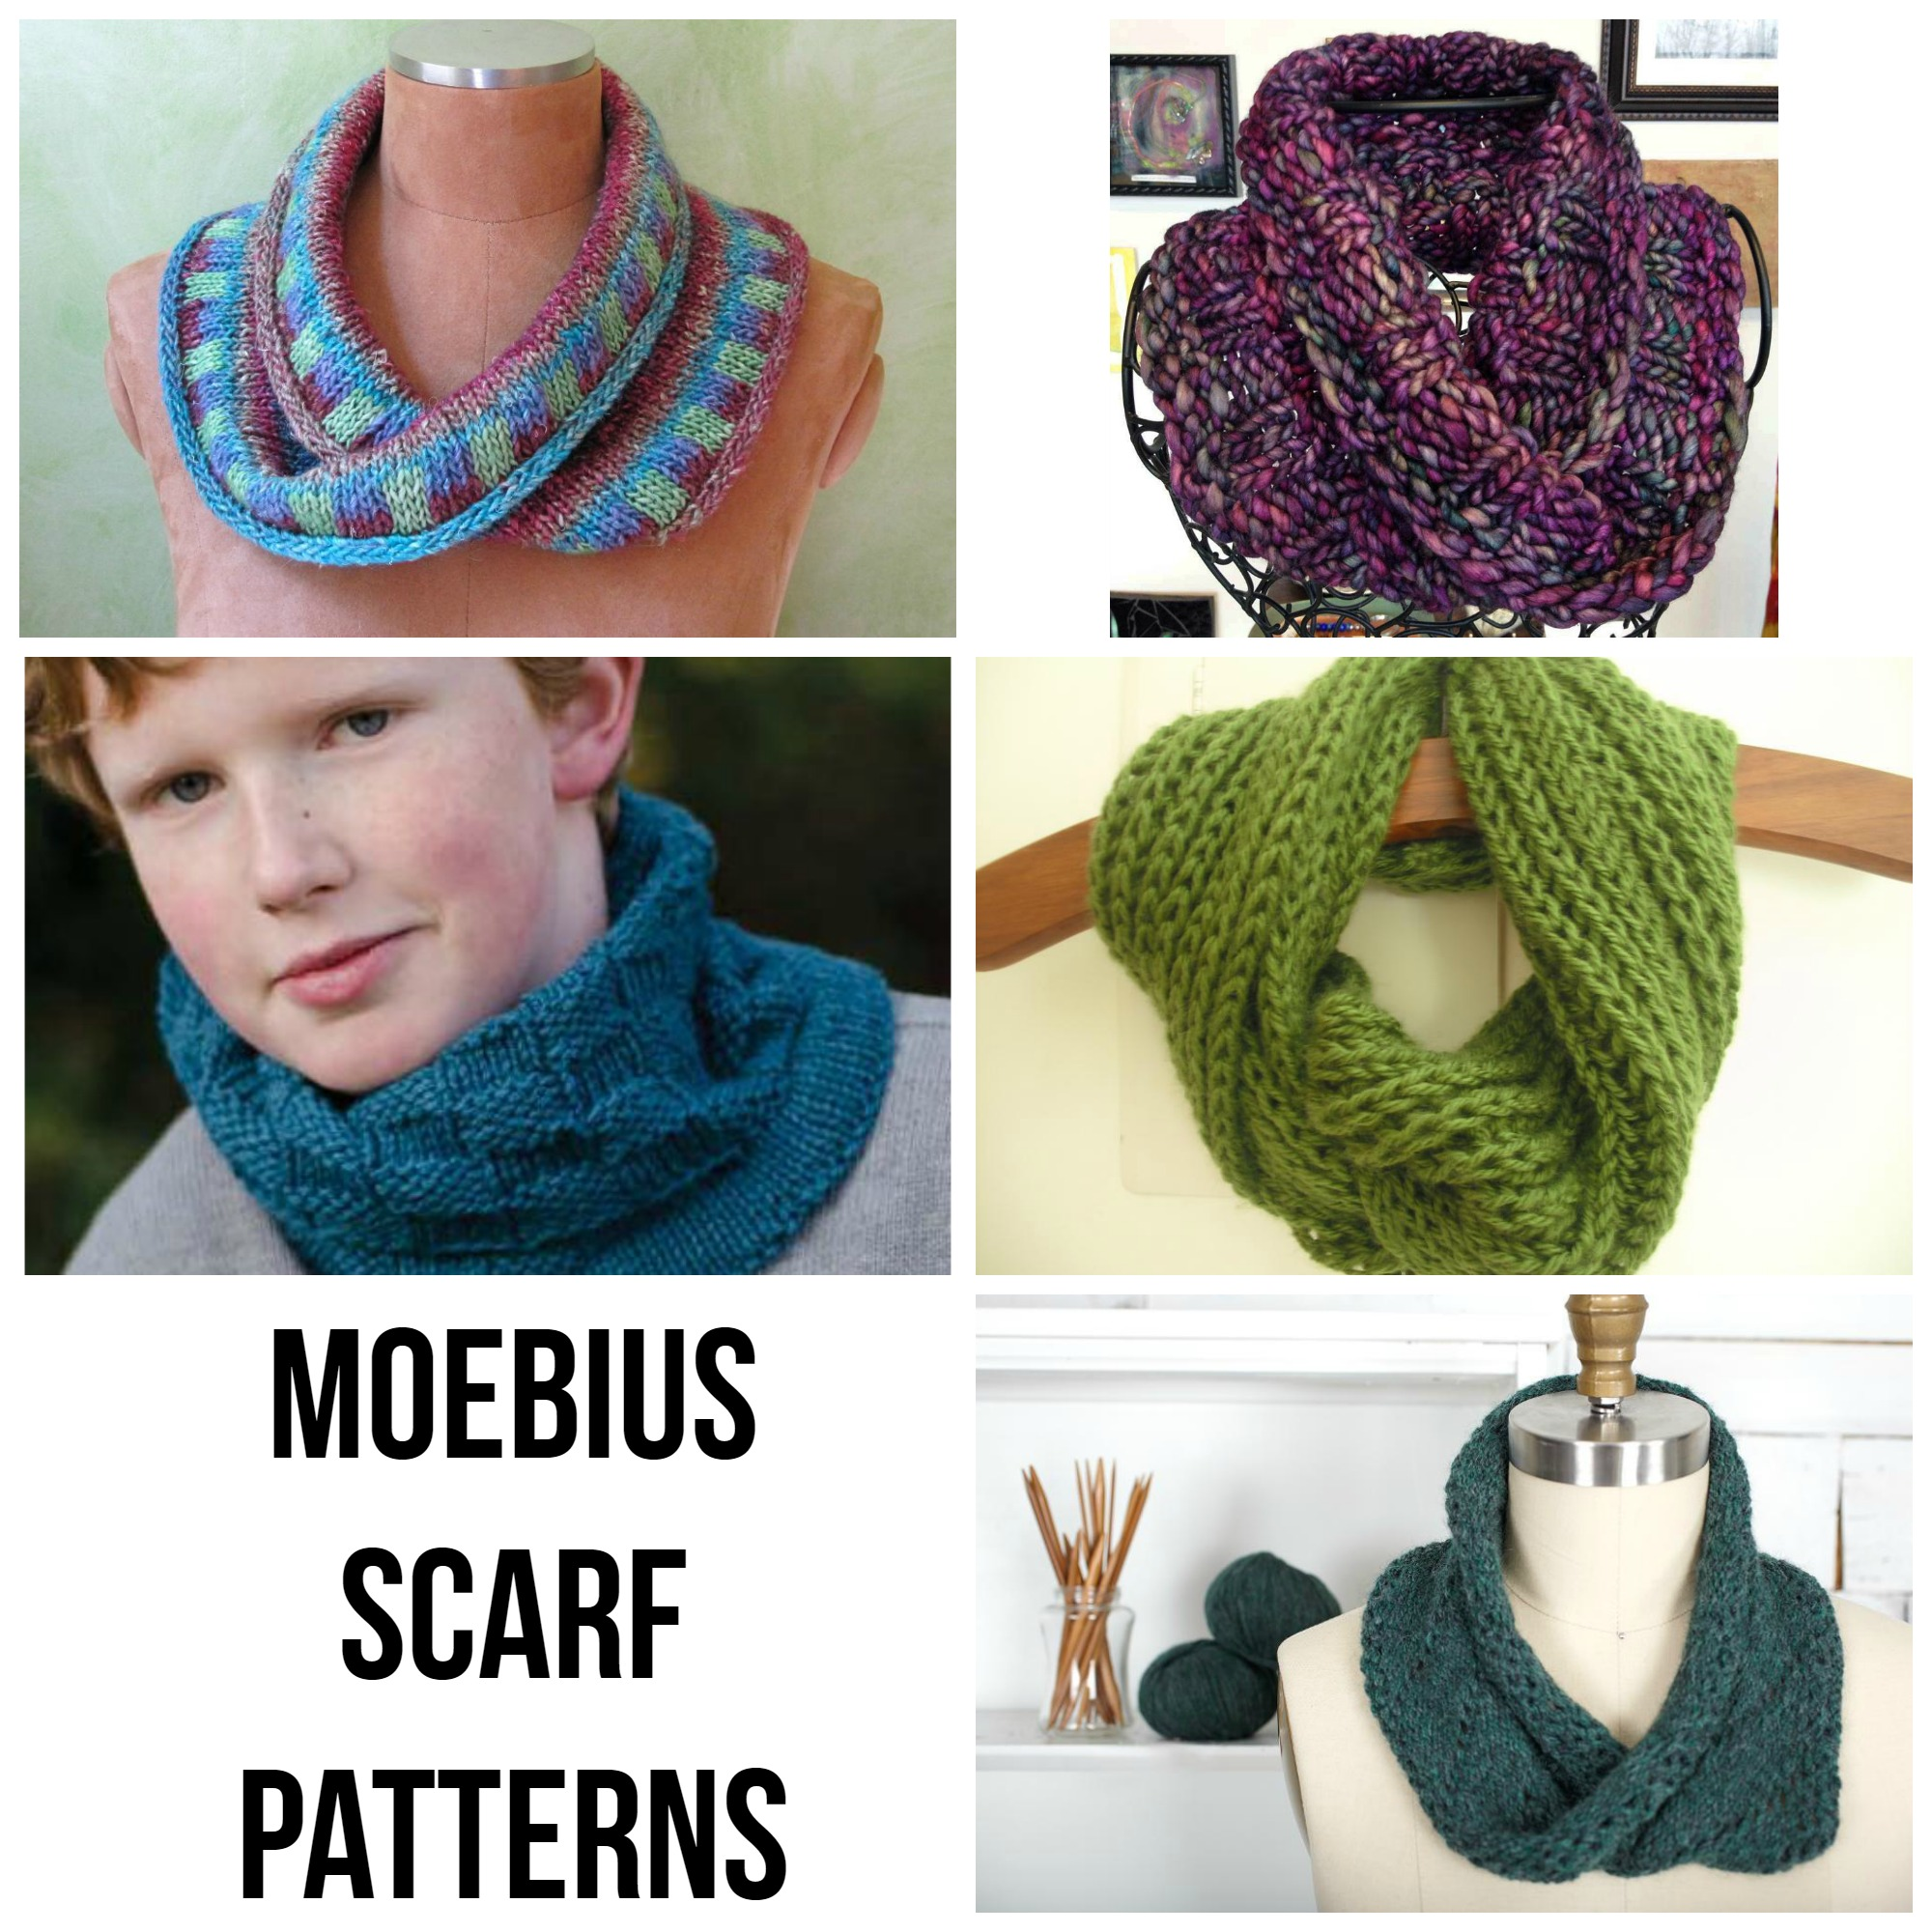 Moebius Scarf Patterns